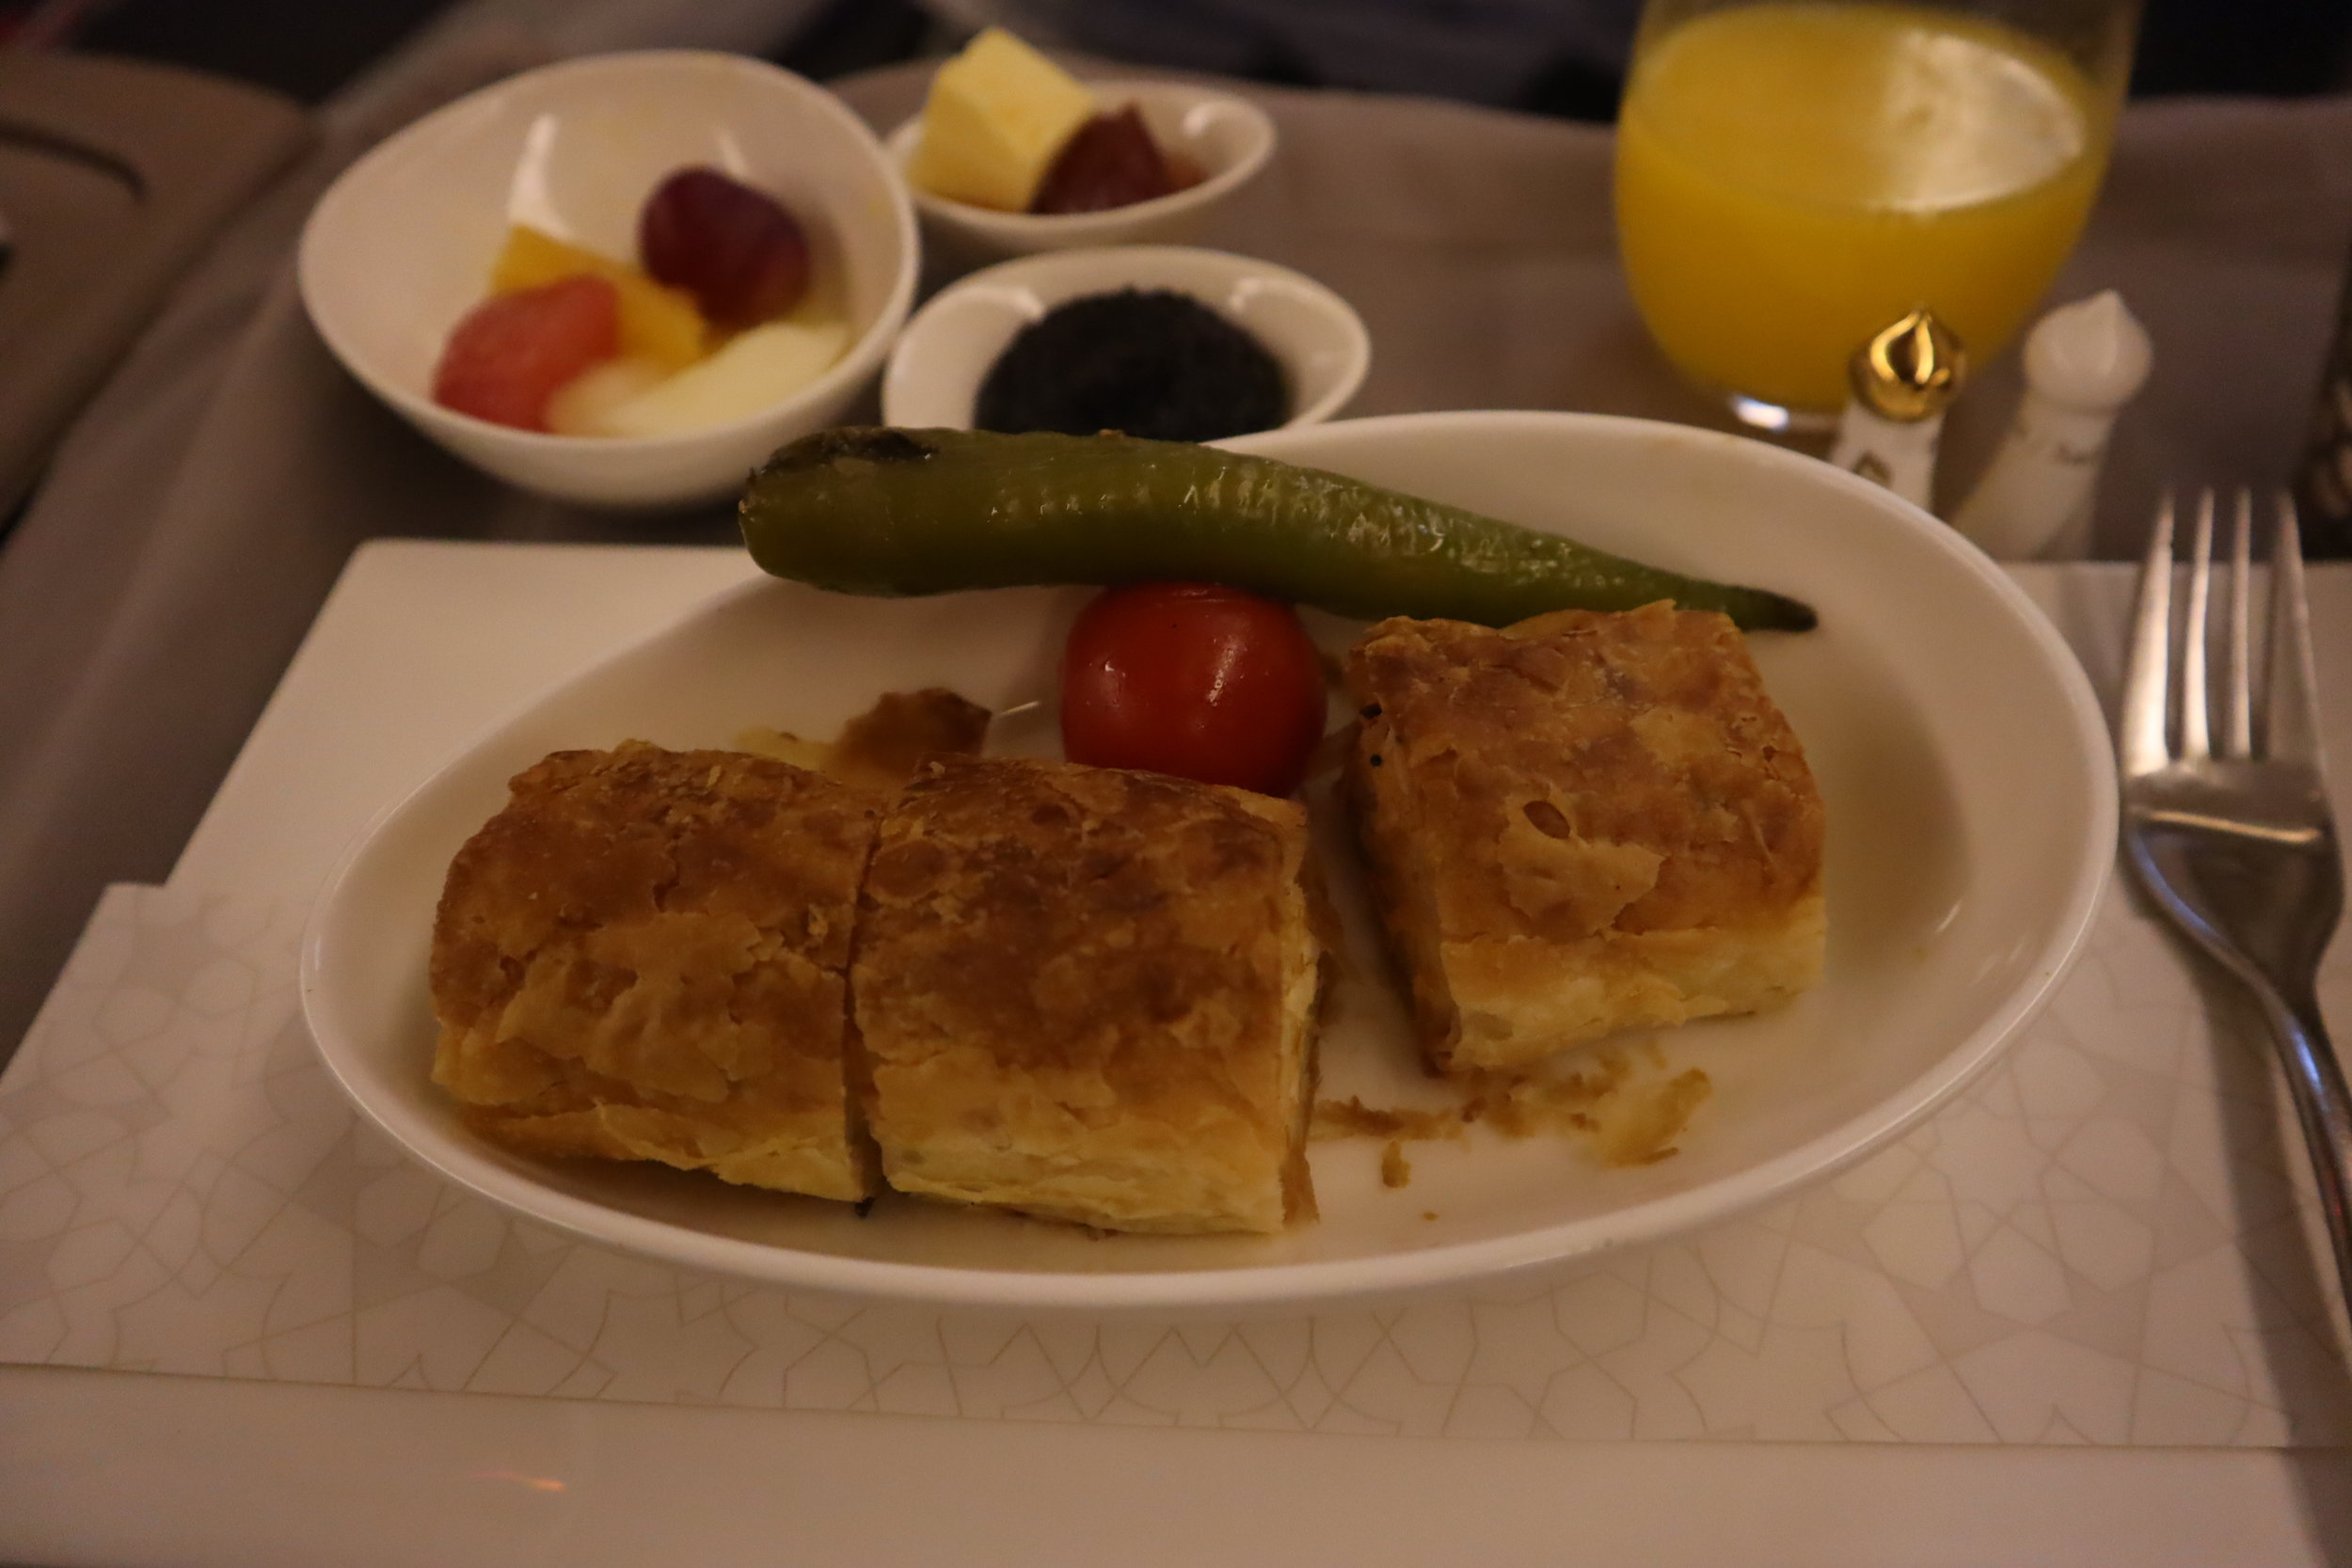 Turkish Airlines 777 business class – Pre-arrival meal